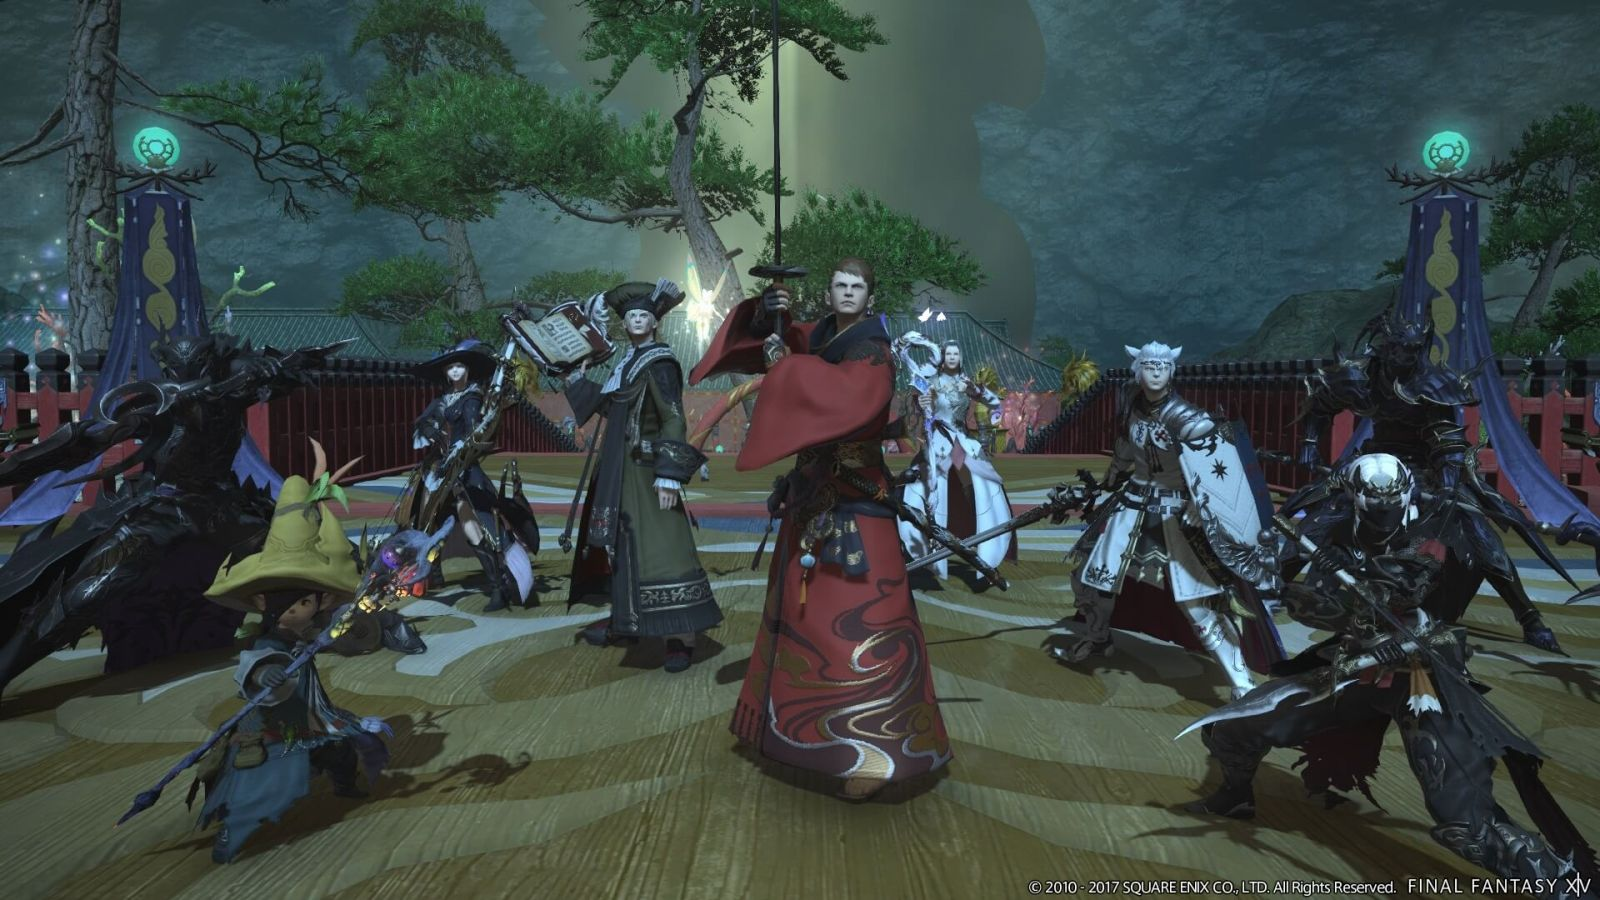 3 Reasons To Look Forward To Eureka In Final Fantasy XIV